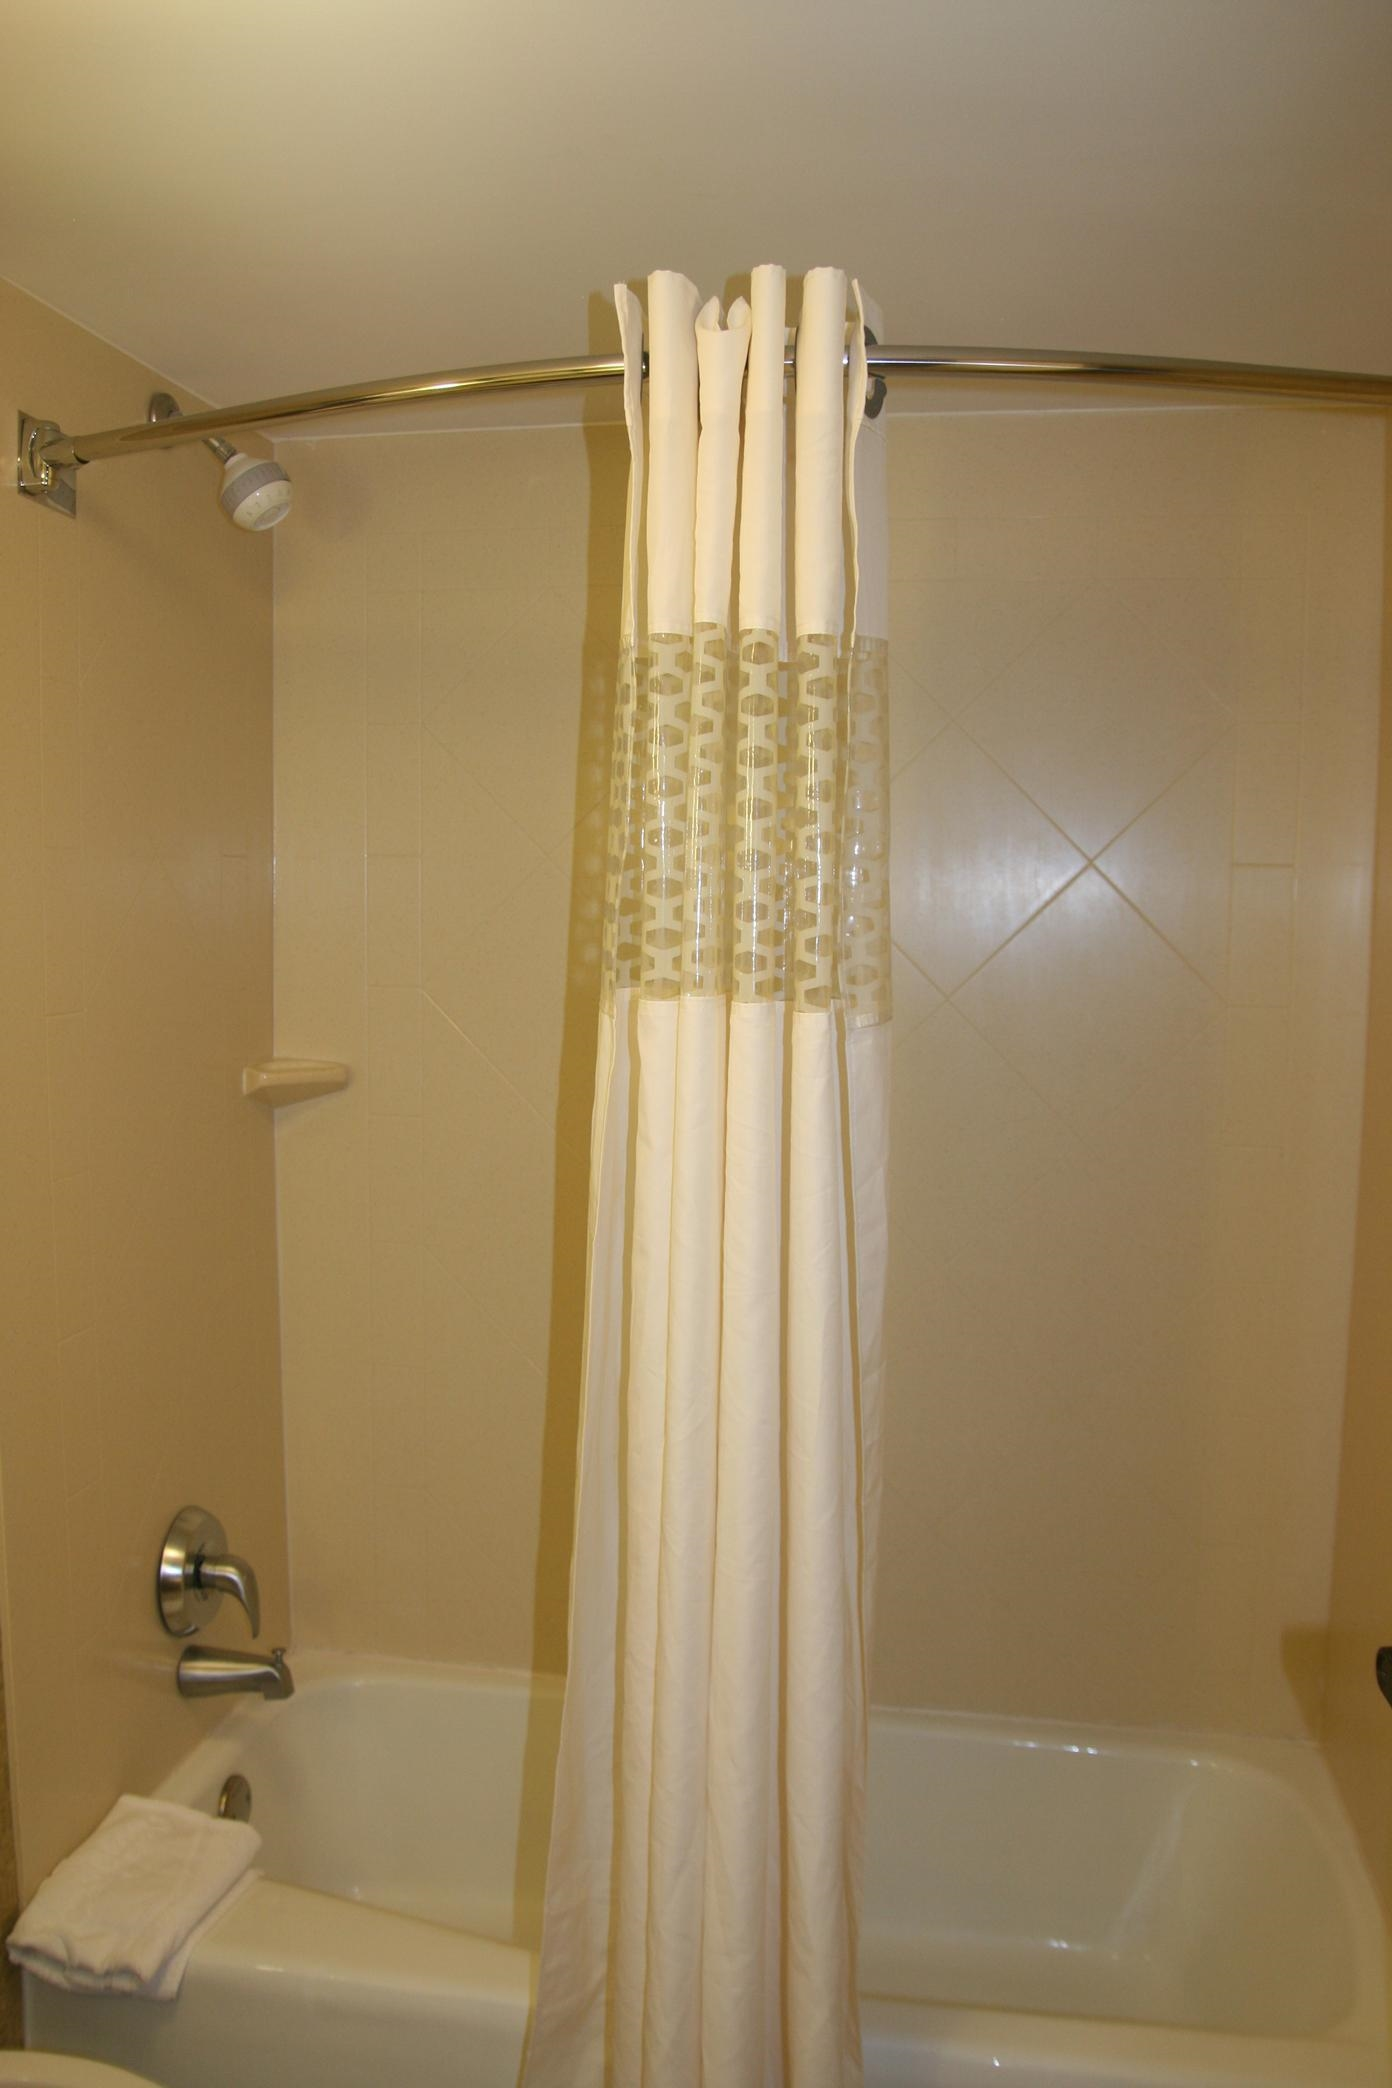 Guest Room Shower and Tub